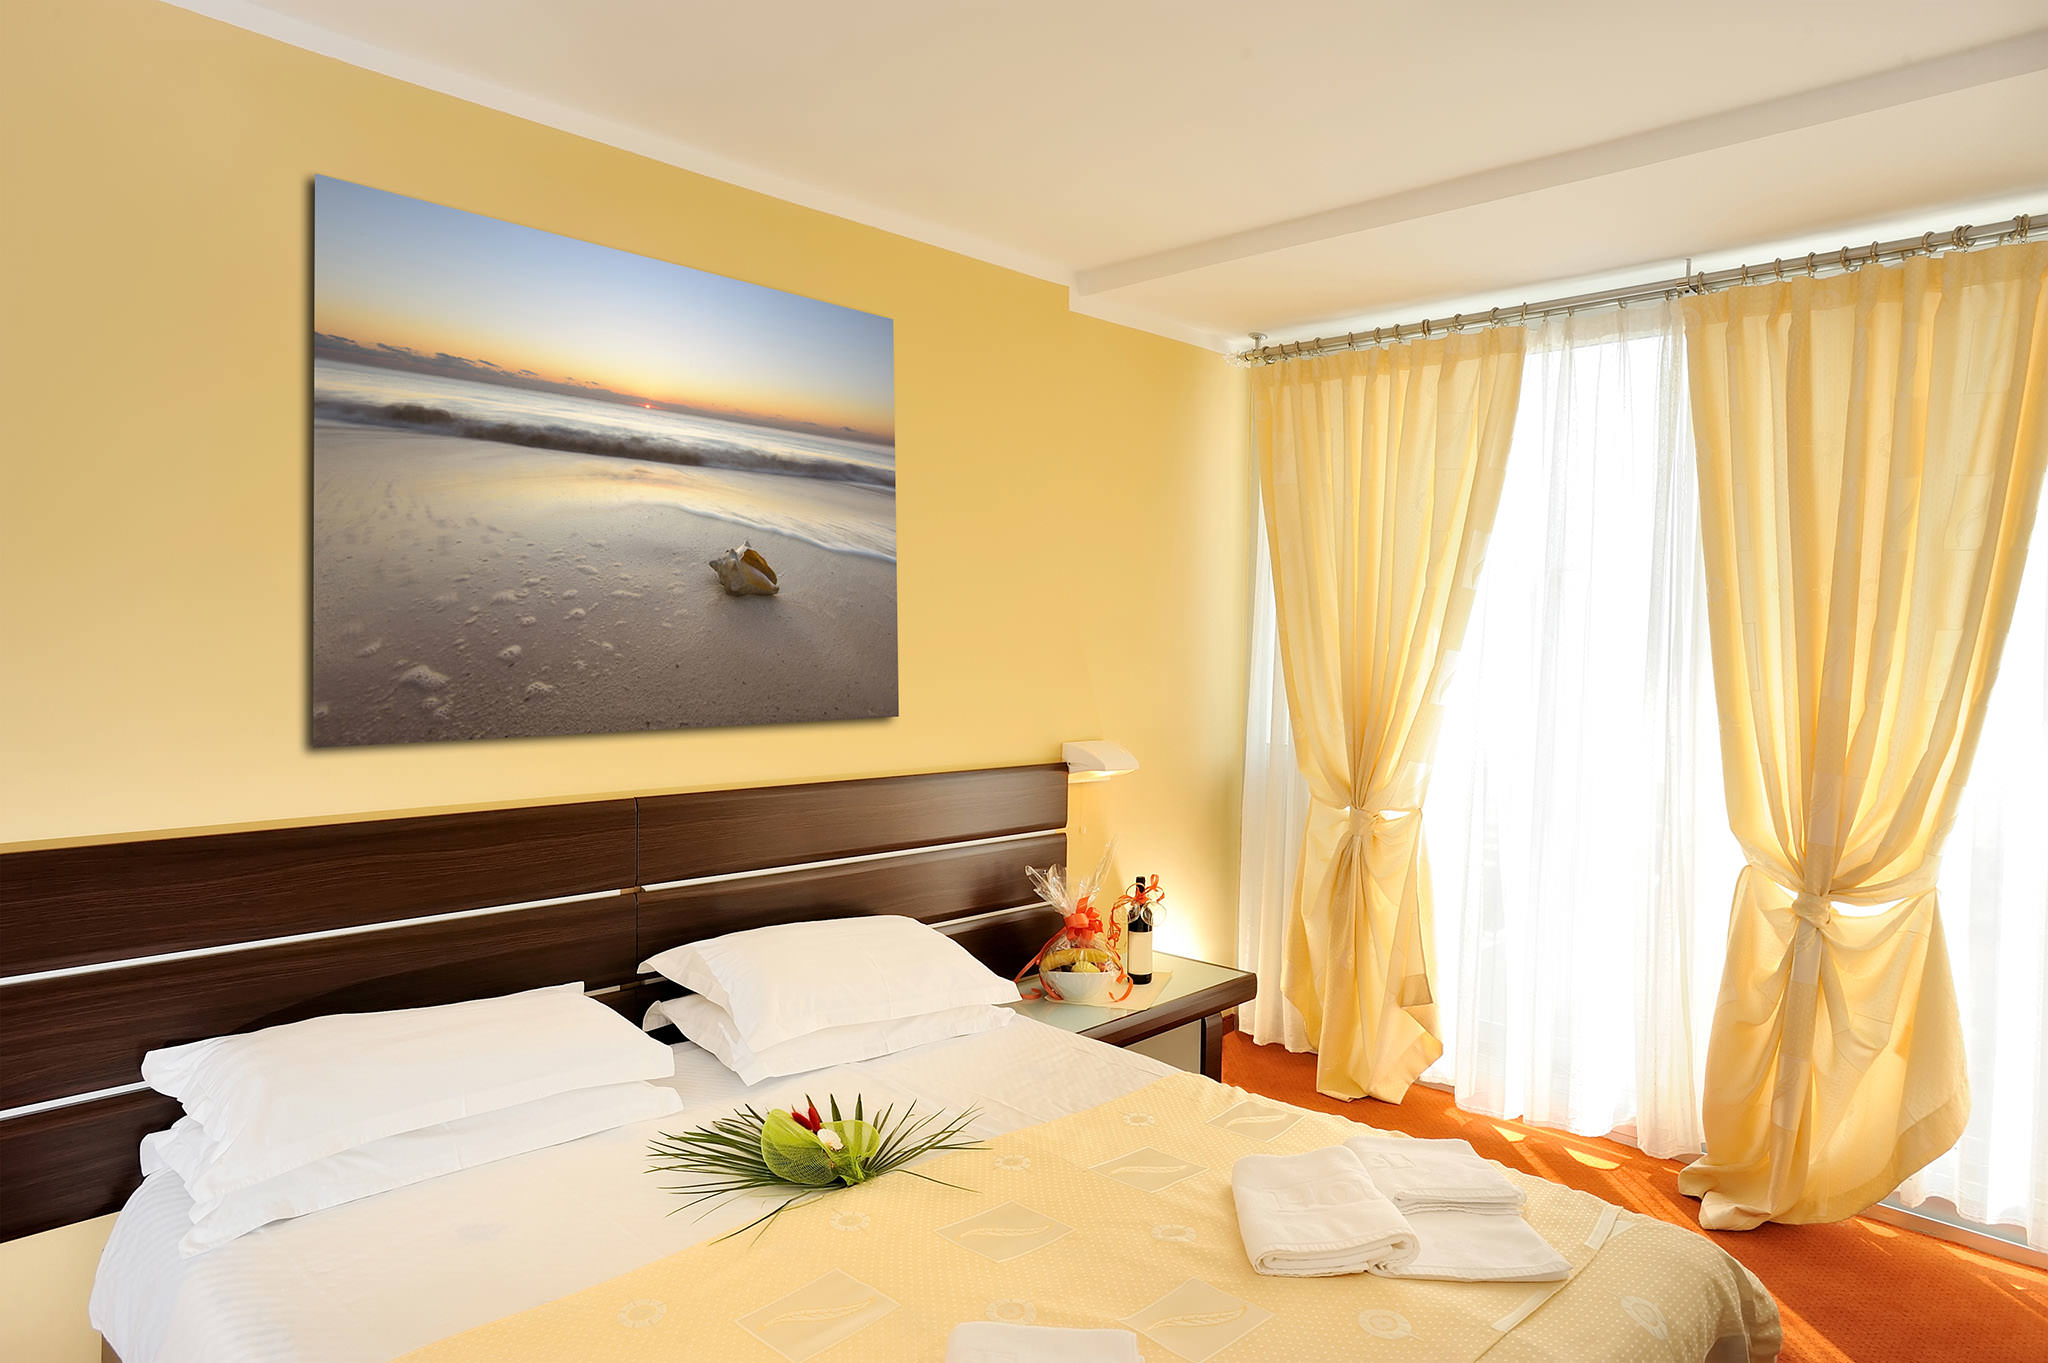 Bedroom Seascape Artwork